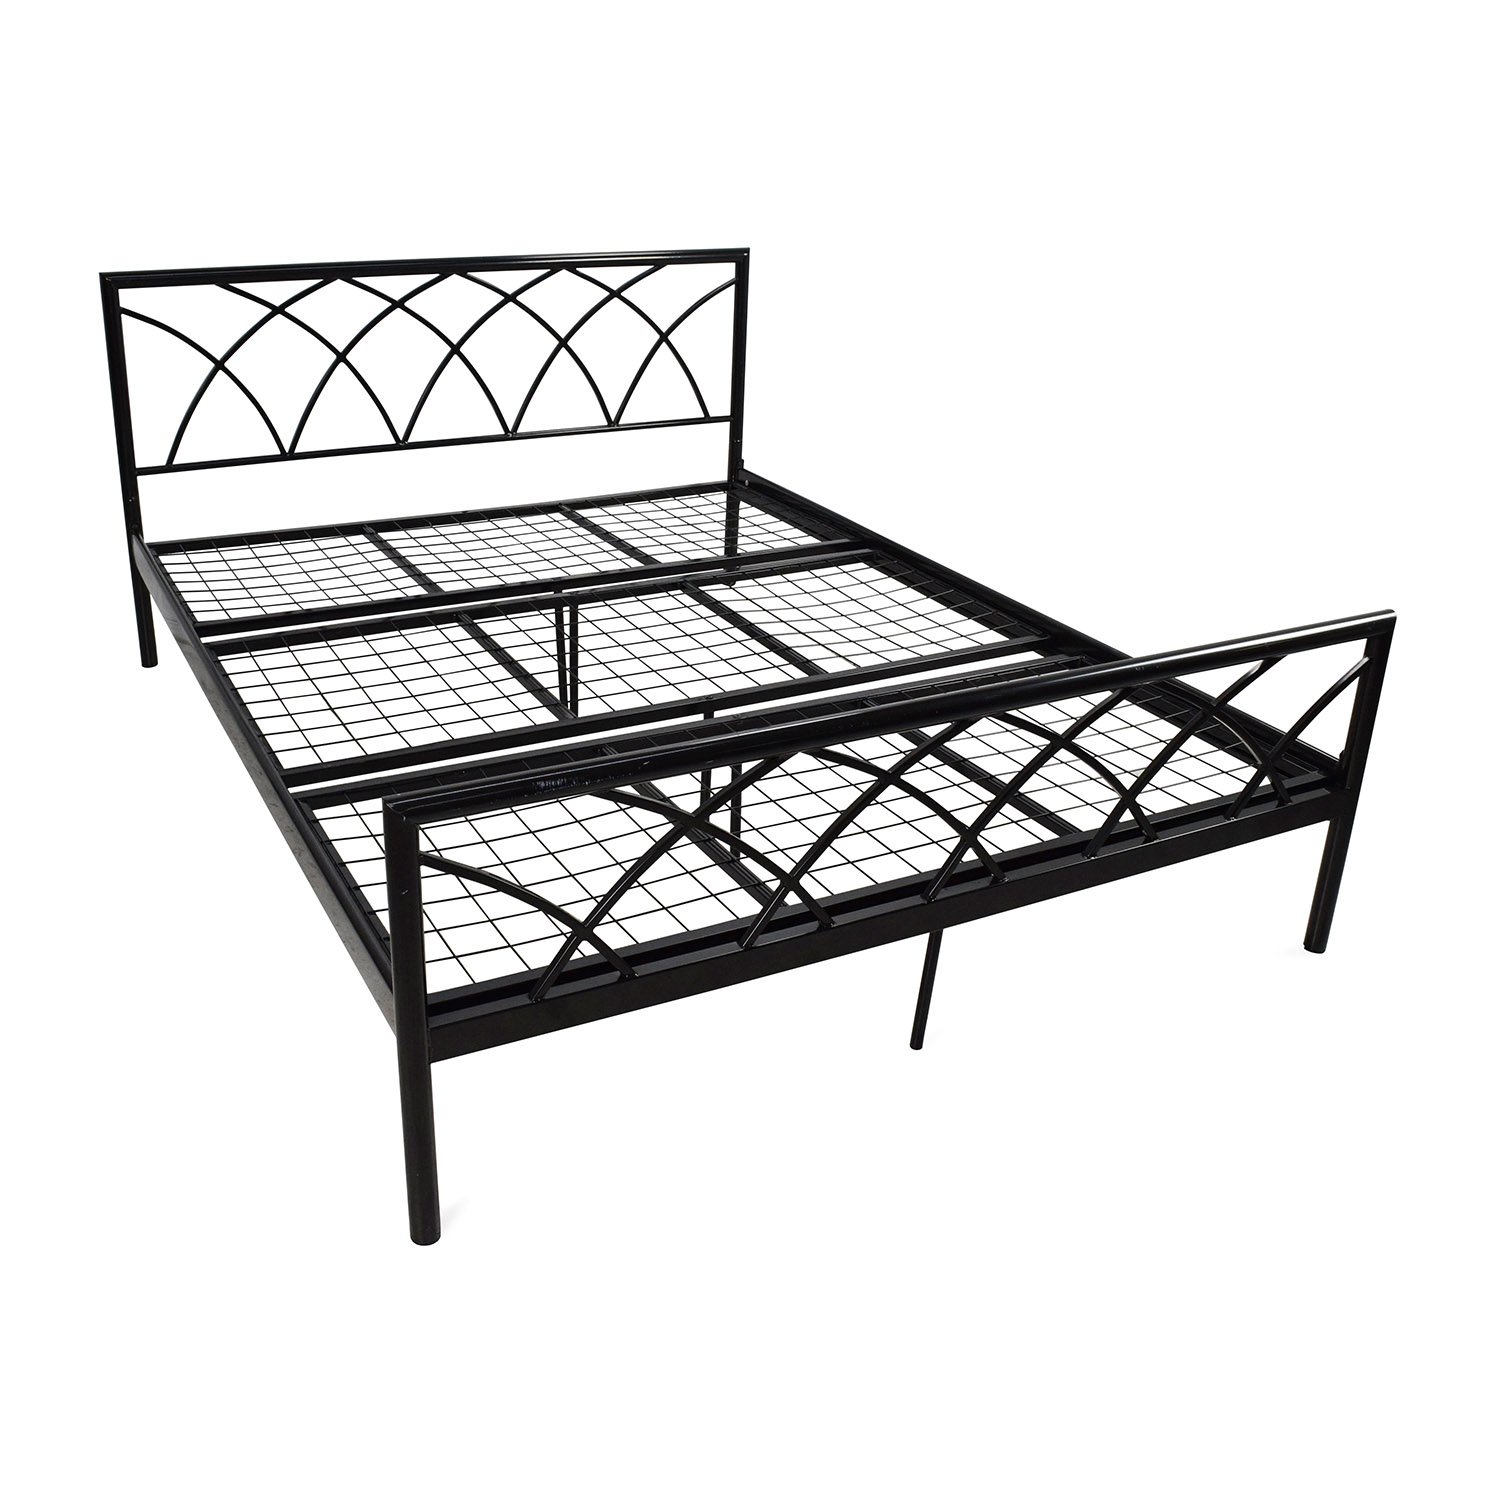 Overstock Queen Size Metal Bed Frame on sale